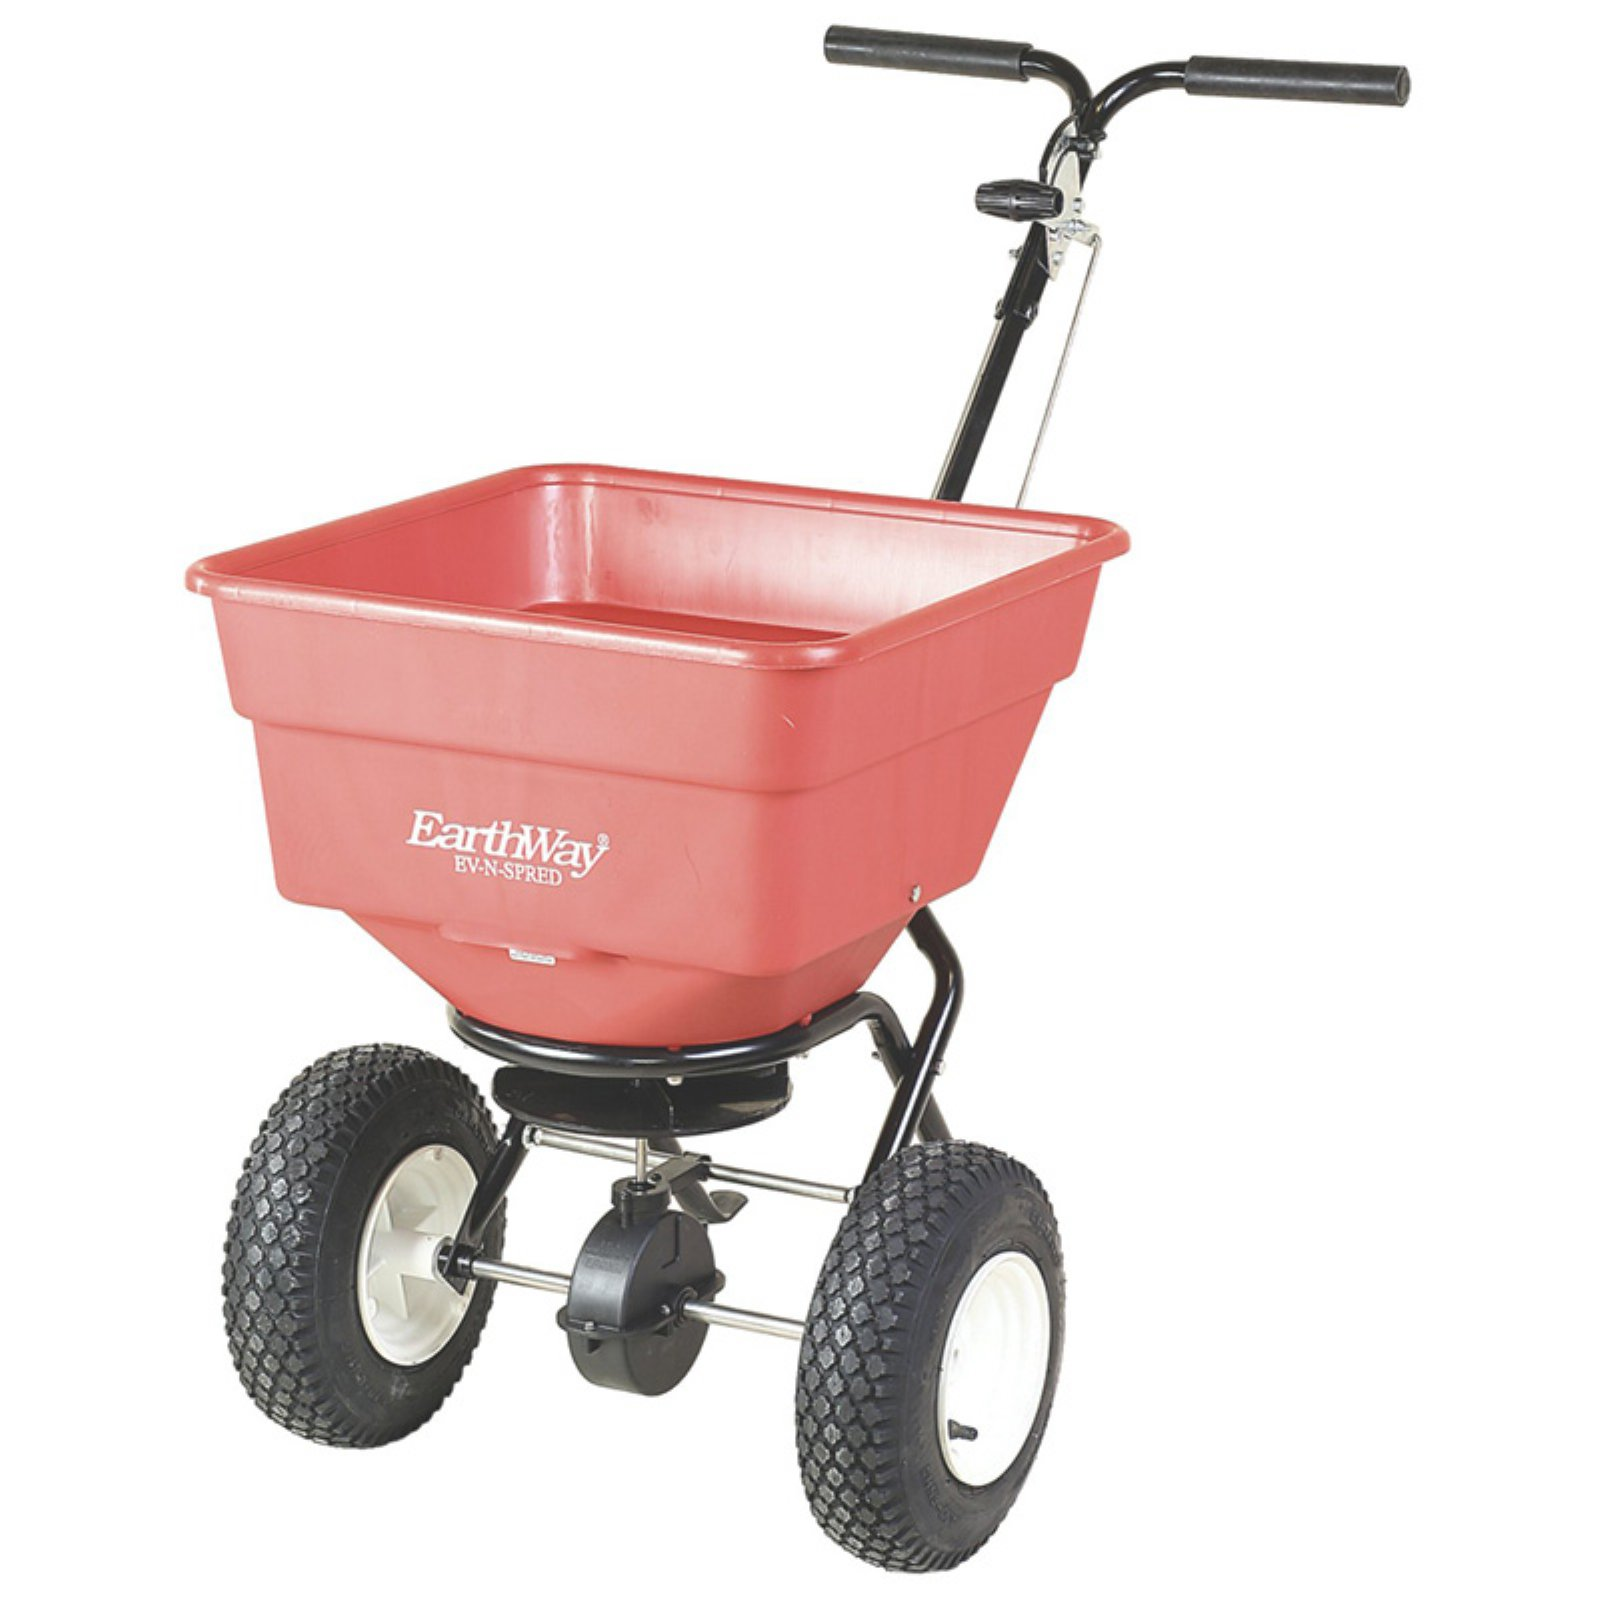 Earthway Spreader with 1 Capacity Hopper